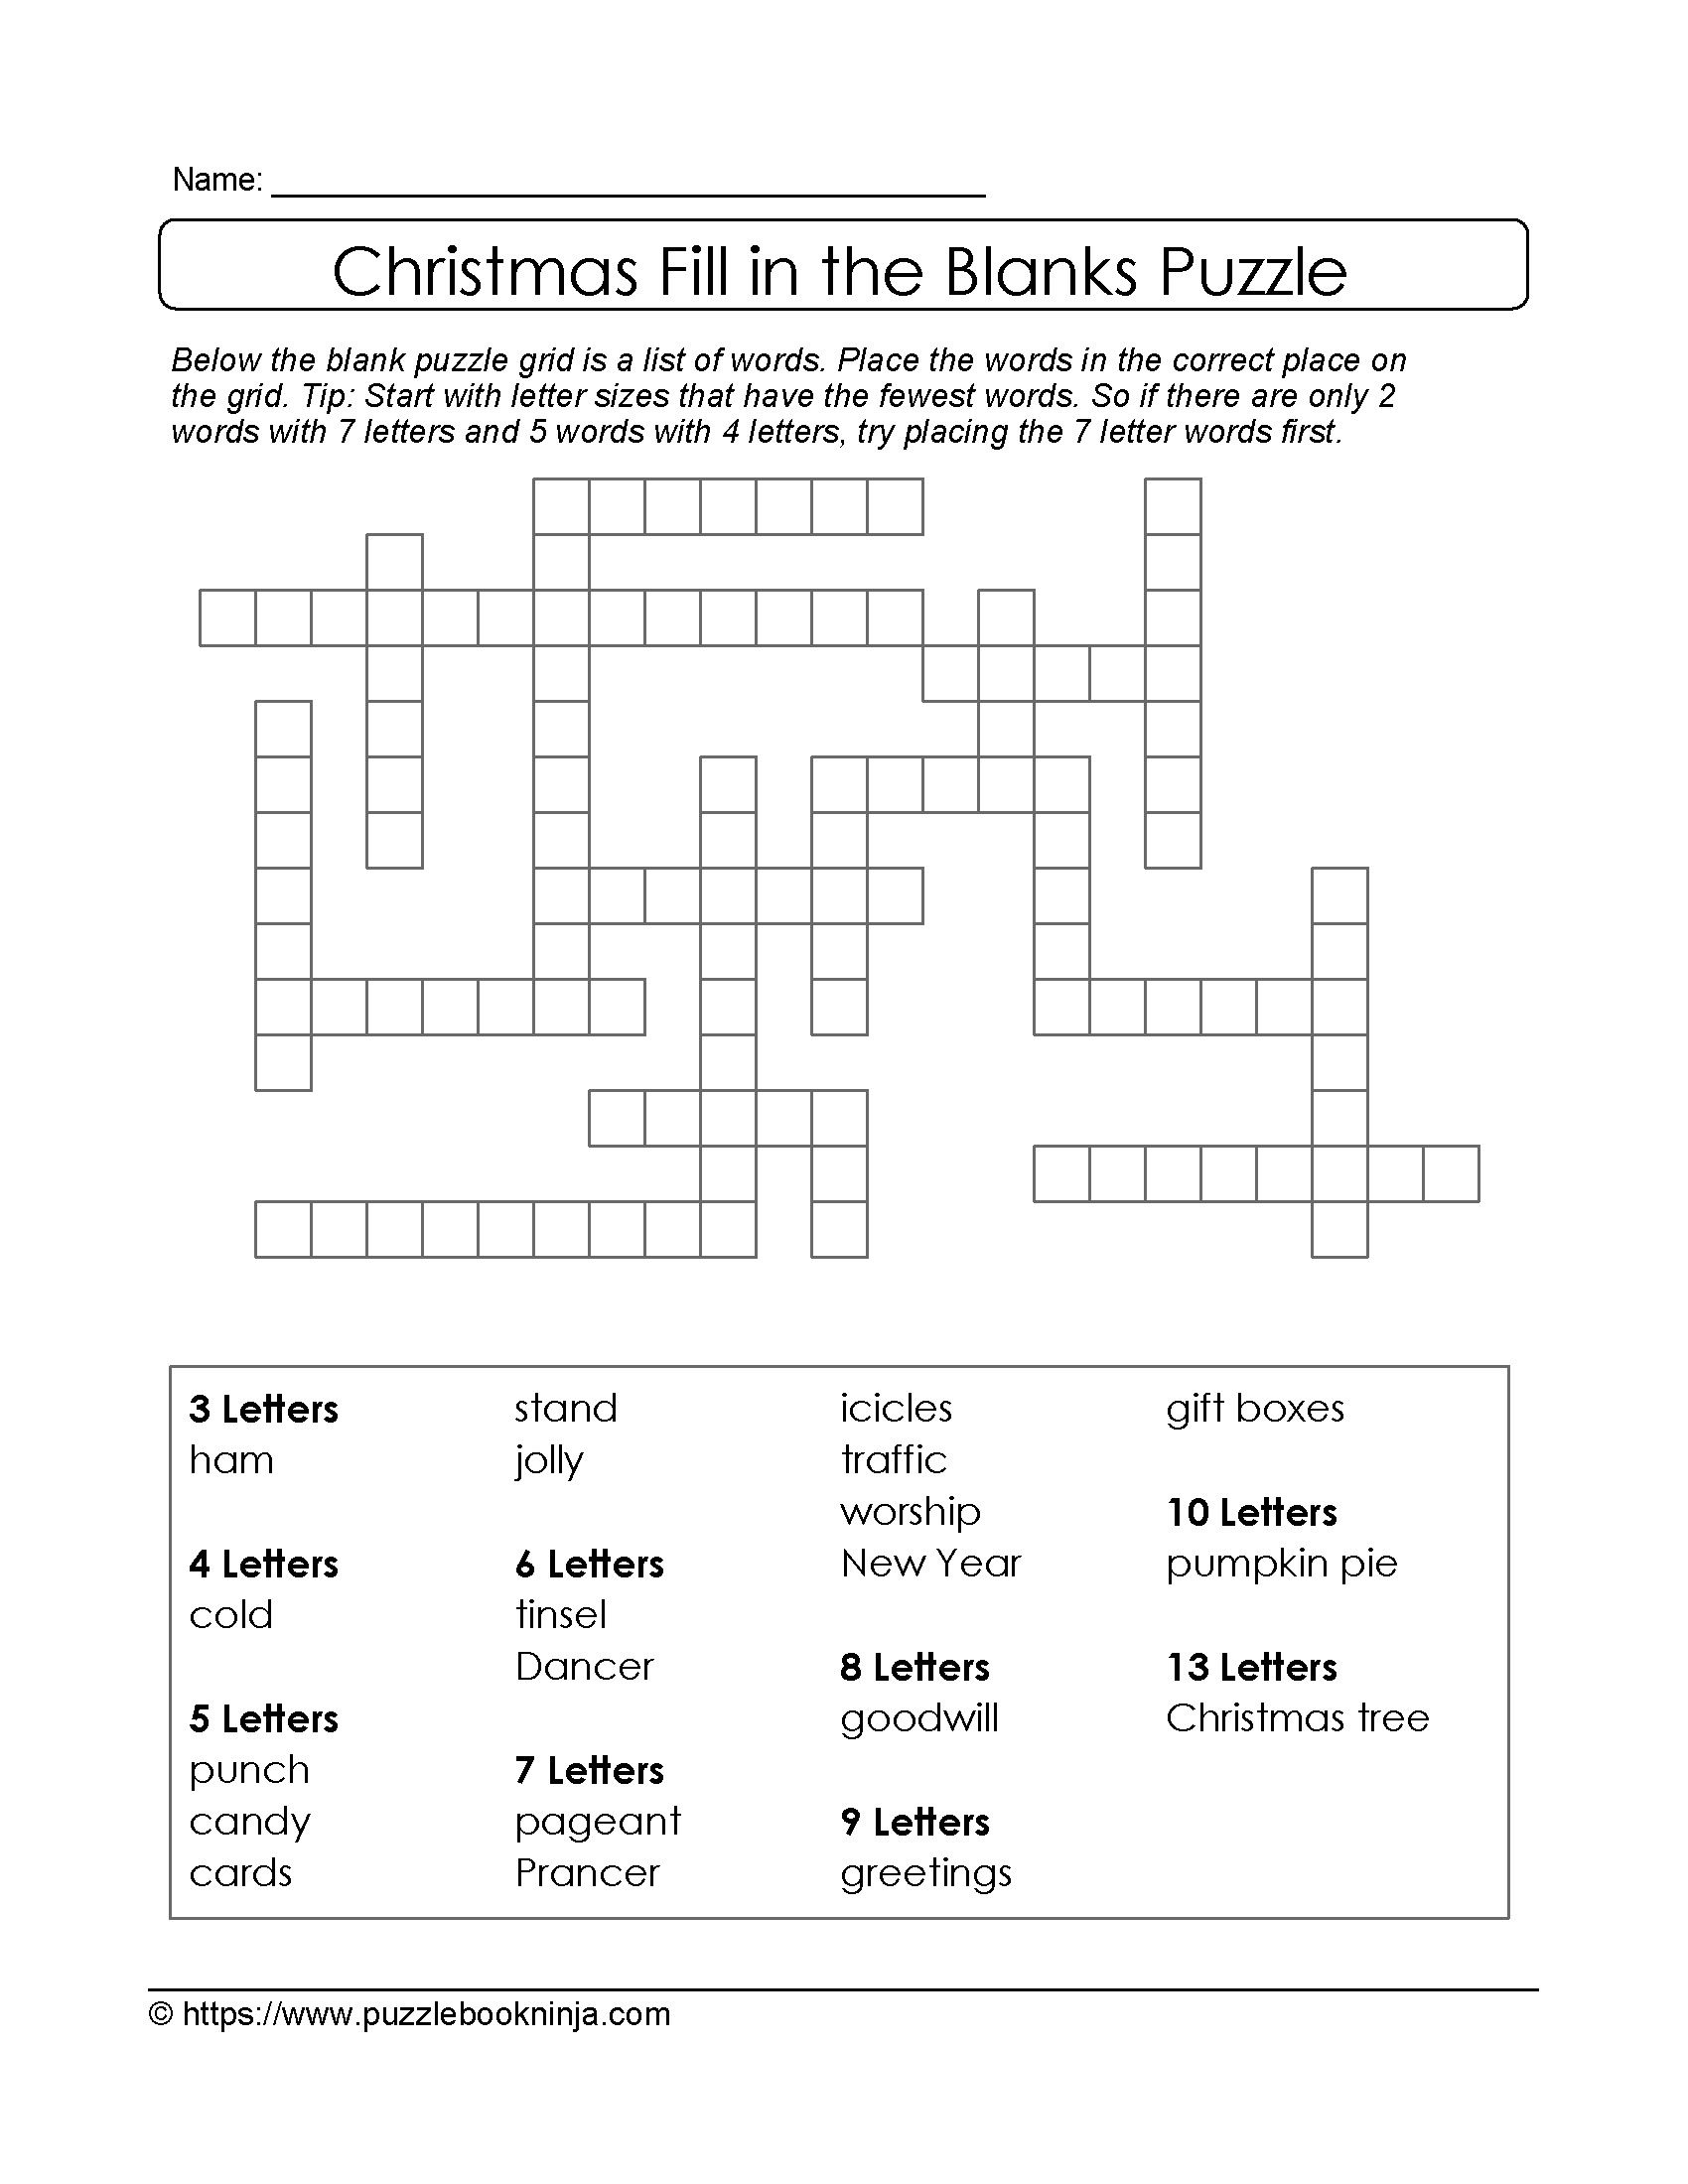 Freebie Xmas Puzzle To Print. Fill In The Blanks Crossword Like - Printable Blank Crossword Grid